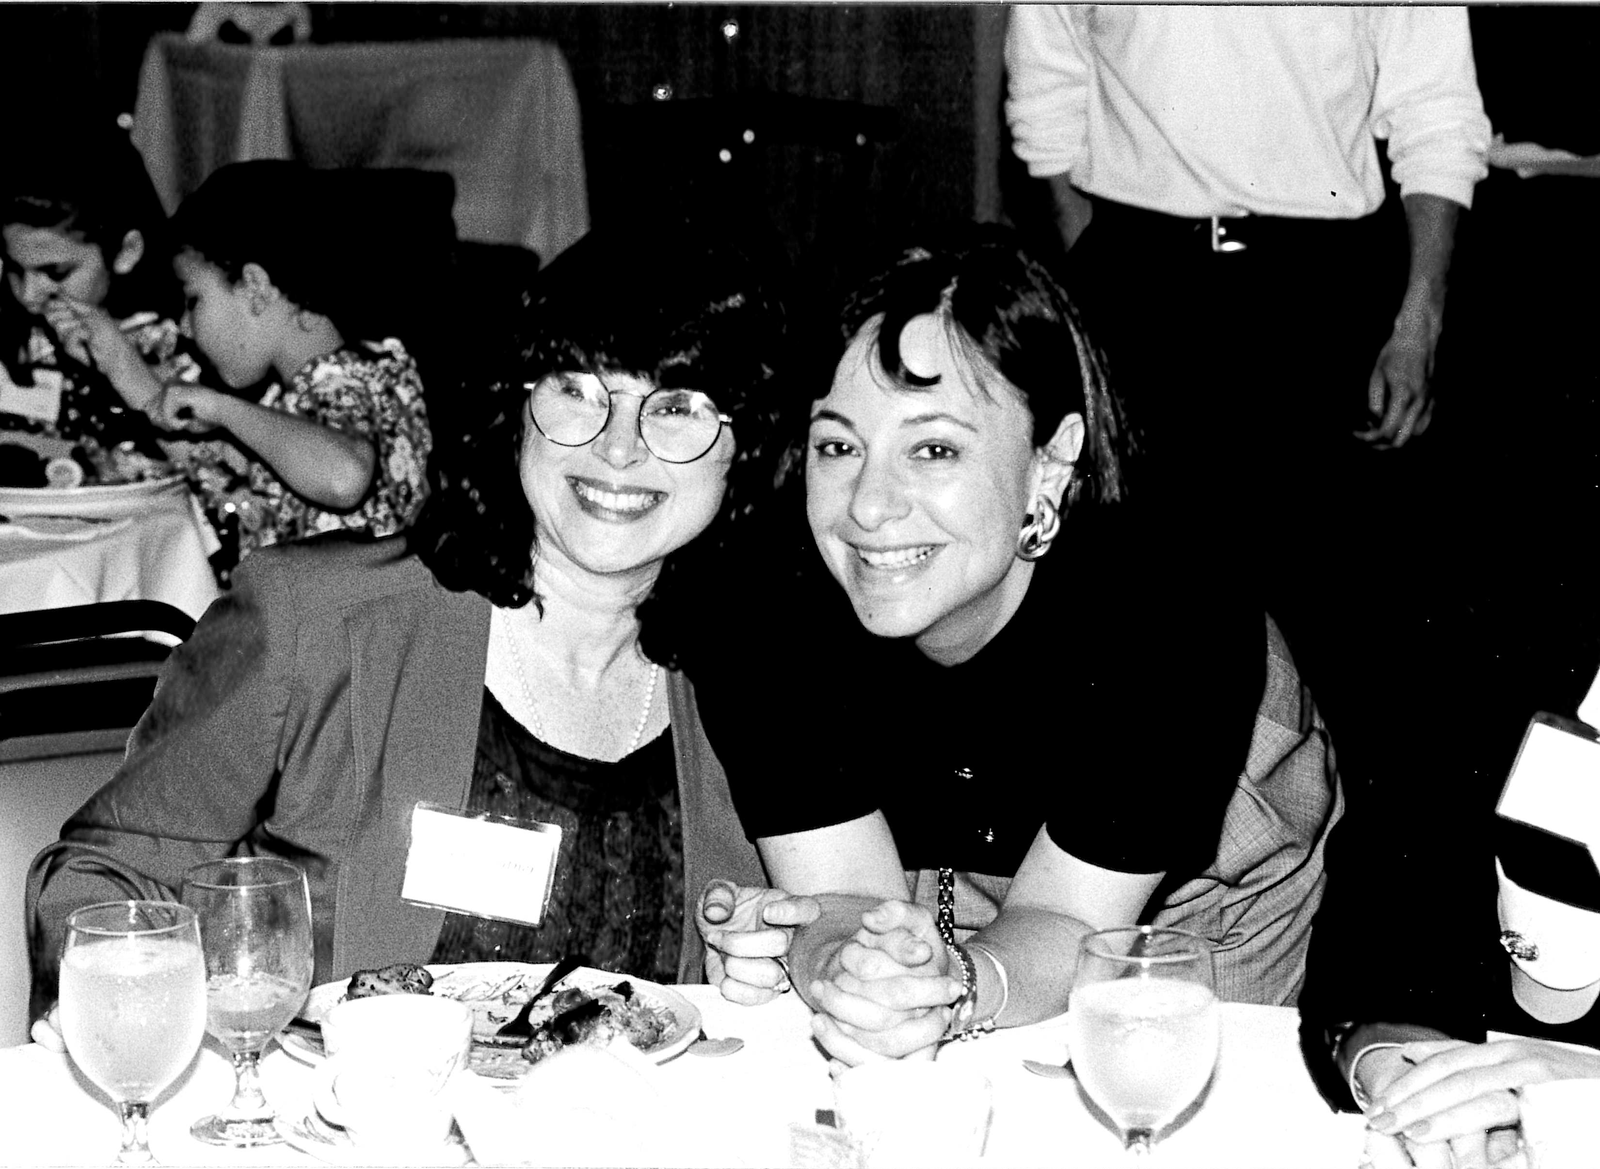 Michele with the Campaign Director for the Women's Campaign, 1990s.